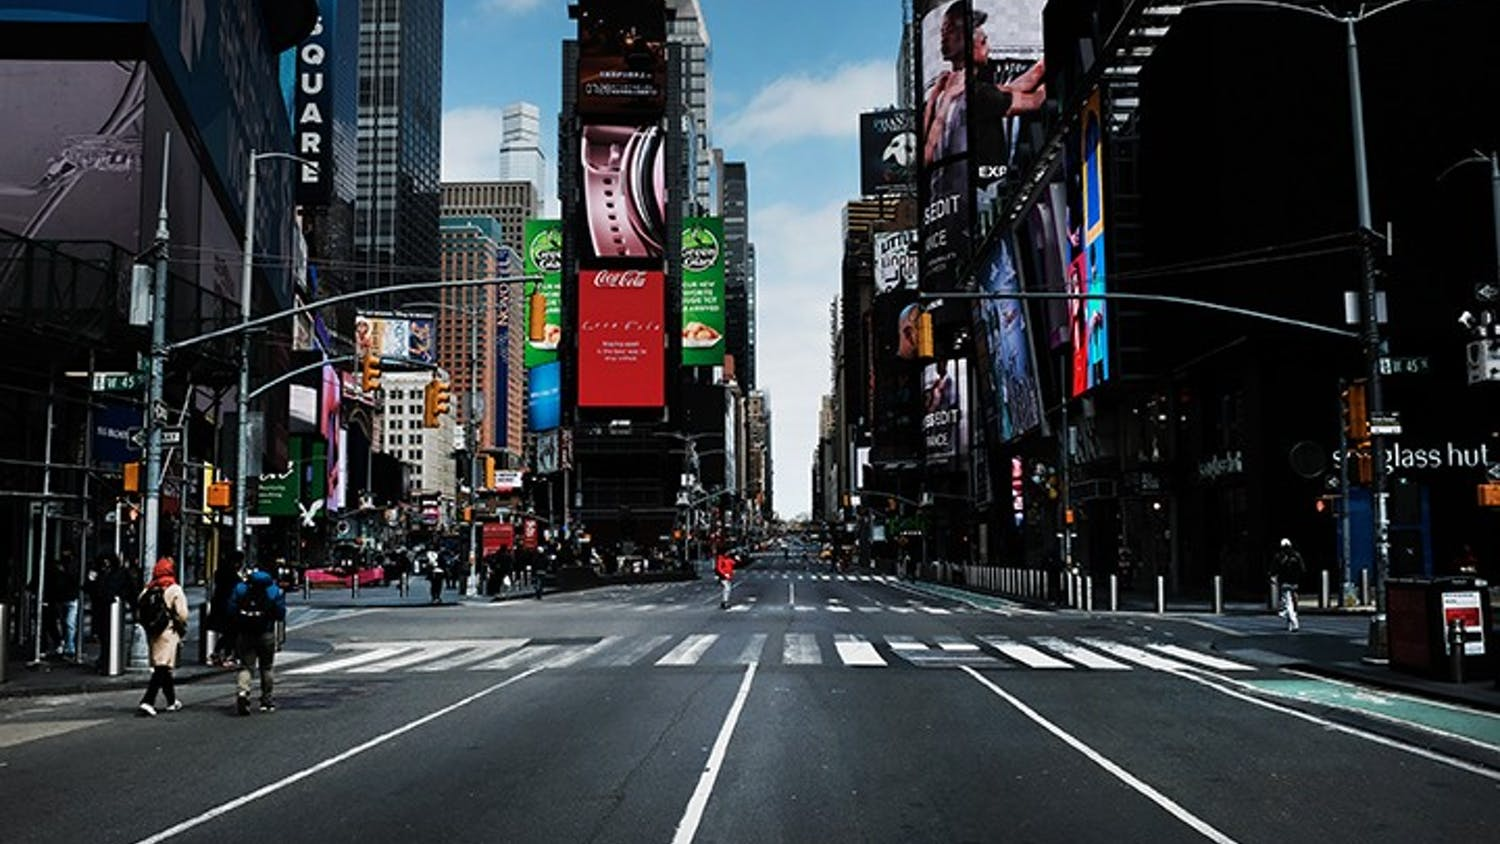 Times Square in New York stands mostly empty as as much of the city is void of cars and pedestrians amid the coronavirus pandemic, March 22, 2020.